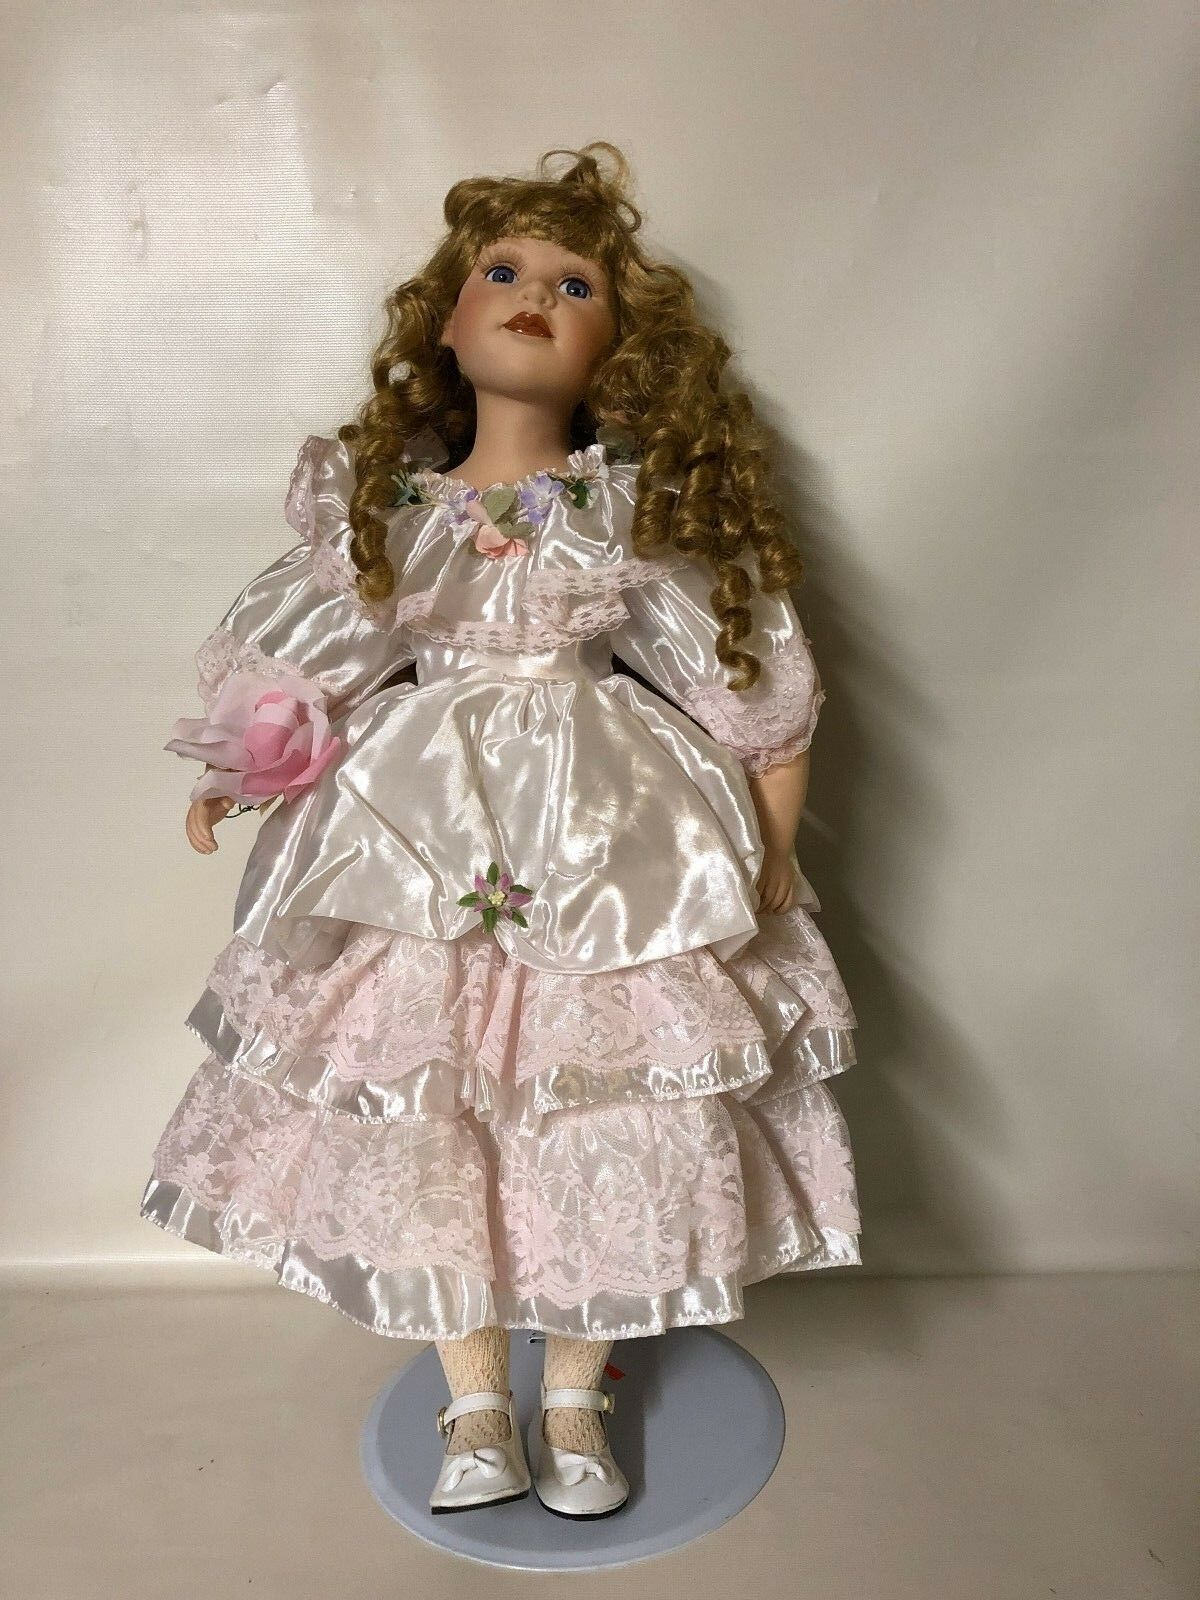 BEAUTIFUL COURT OF DOLLS PORCELAIN DOLL 23 INCHES  304 2000